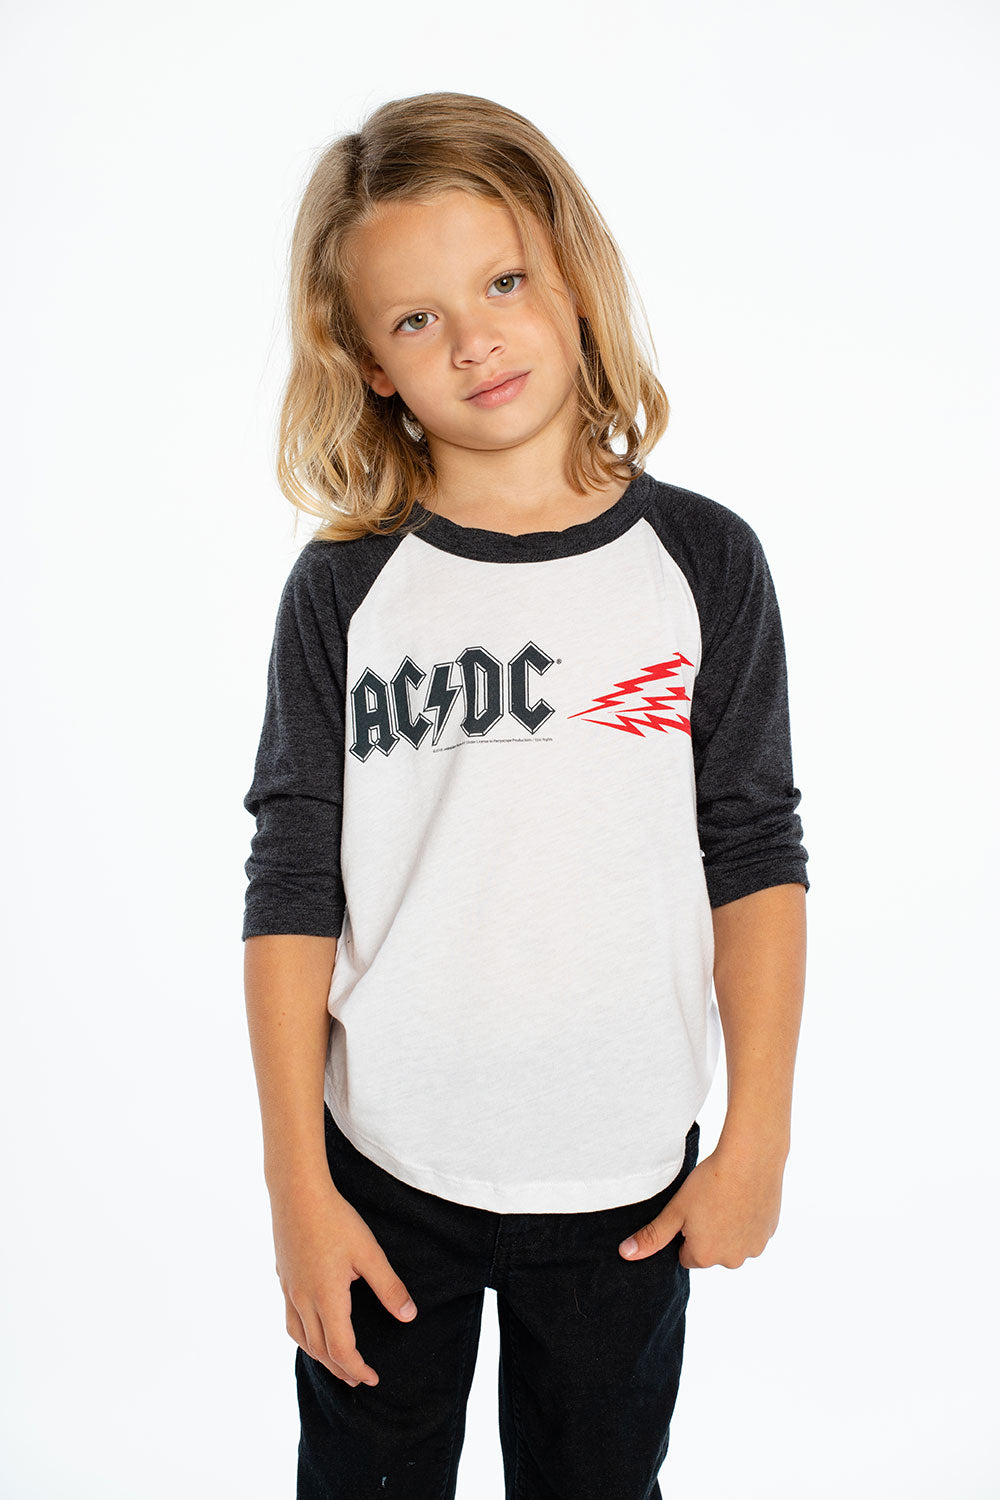 ACDC - Red Lightning BOYS - chaserbrand